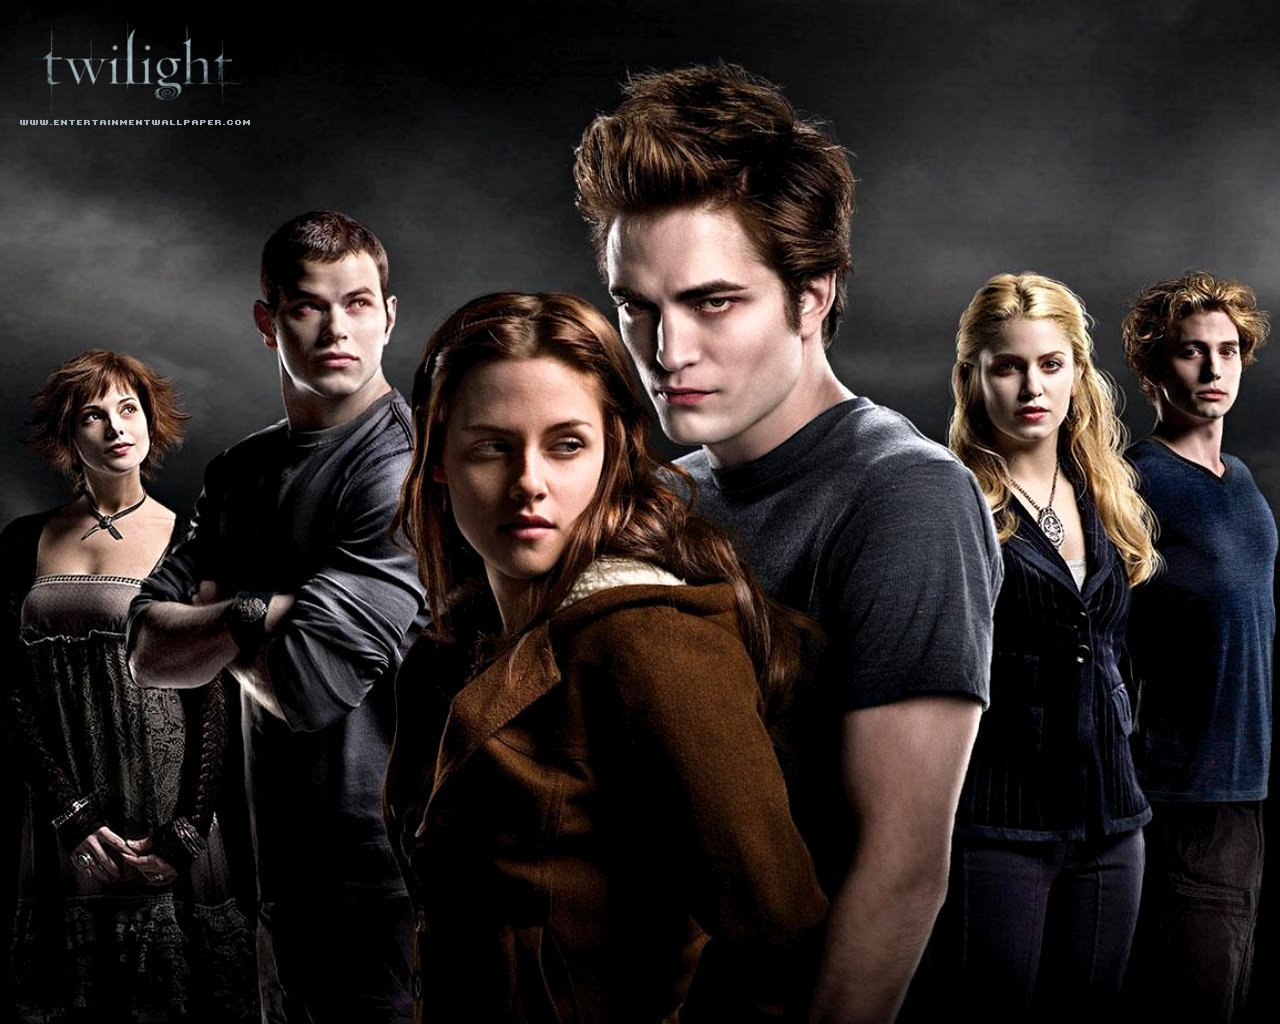 twilight movie If you're a vampire, it's all about you why is edward cullen obsessed to the point of erotomania by bella swan because she smells so yummy, but he doesn't.